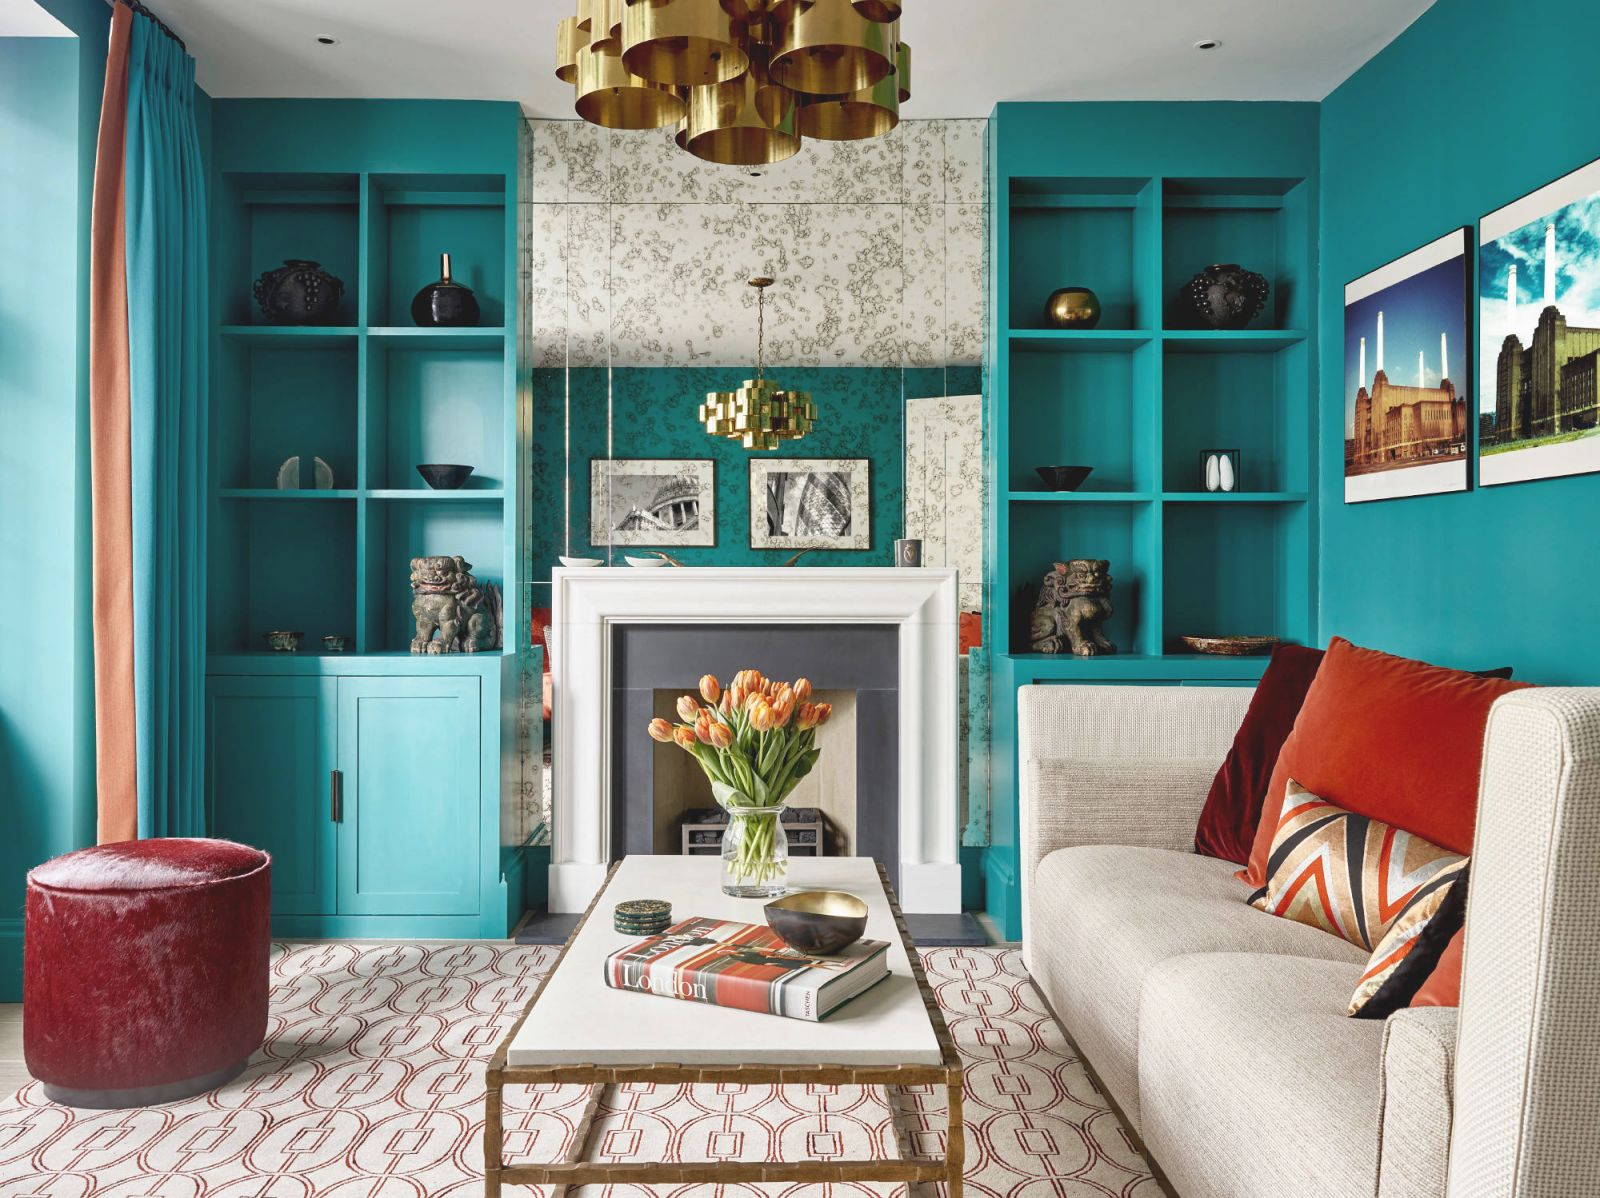 75 Beautiful Turquoise Living Room Pictures & Ideas | Houzz intended for Turquoise Living Room Furniture